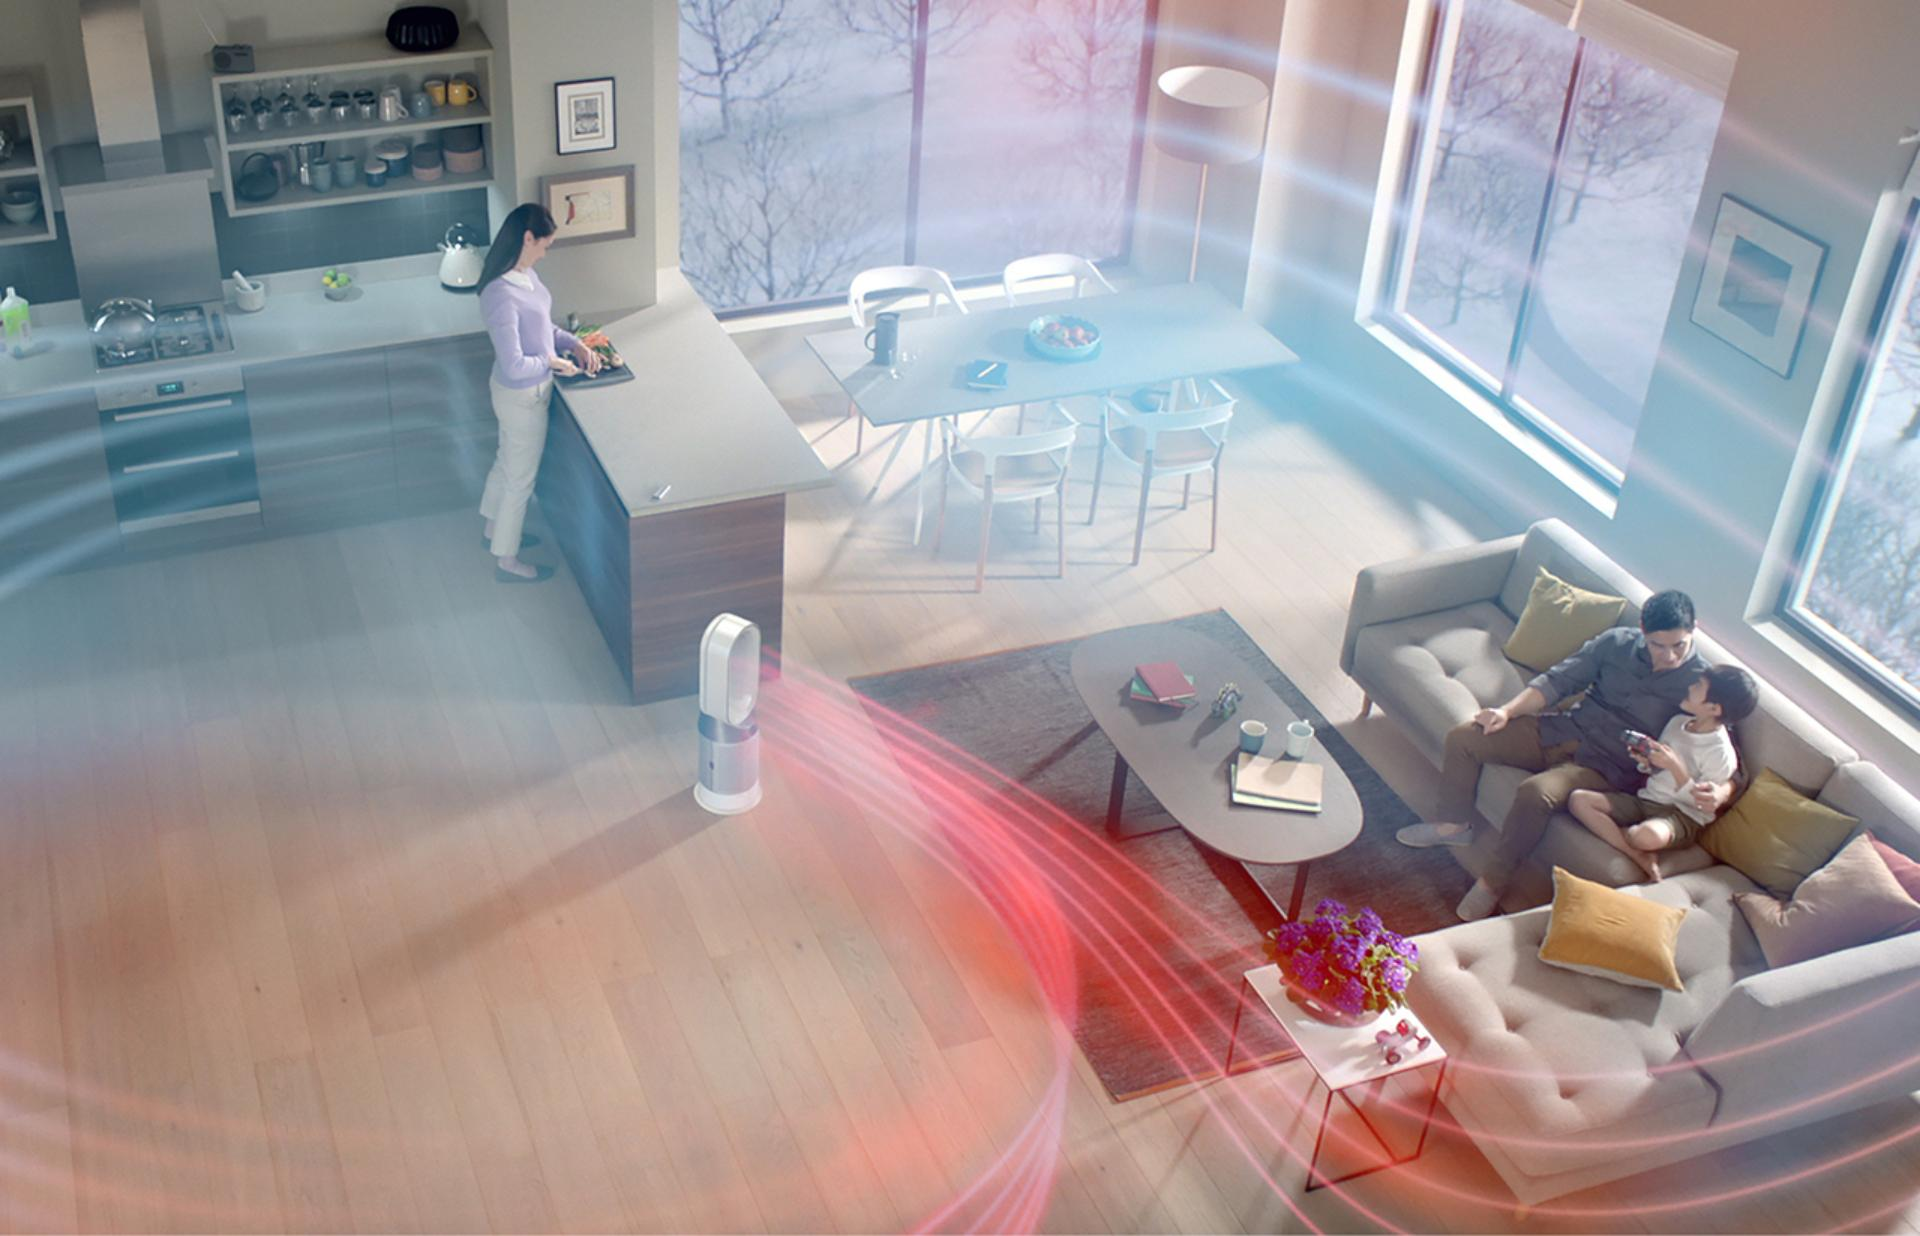 Dyson Pure Hot+Cool purifying fan heater circulating air around family room